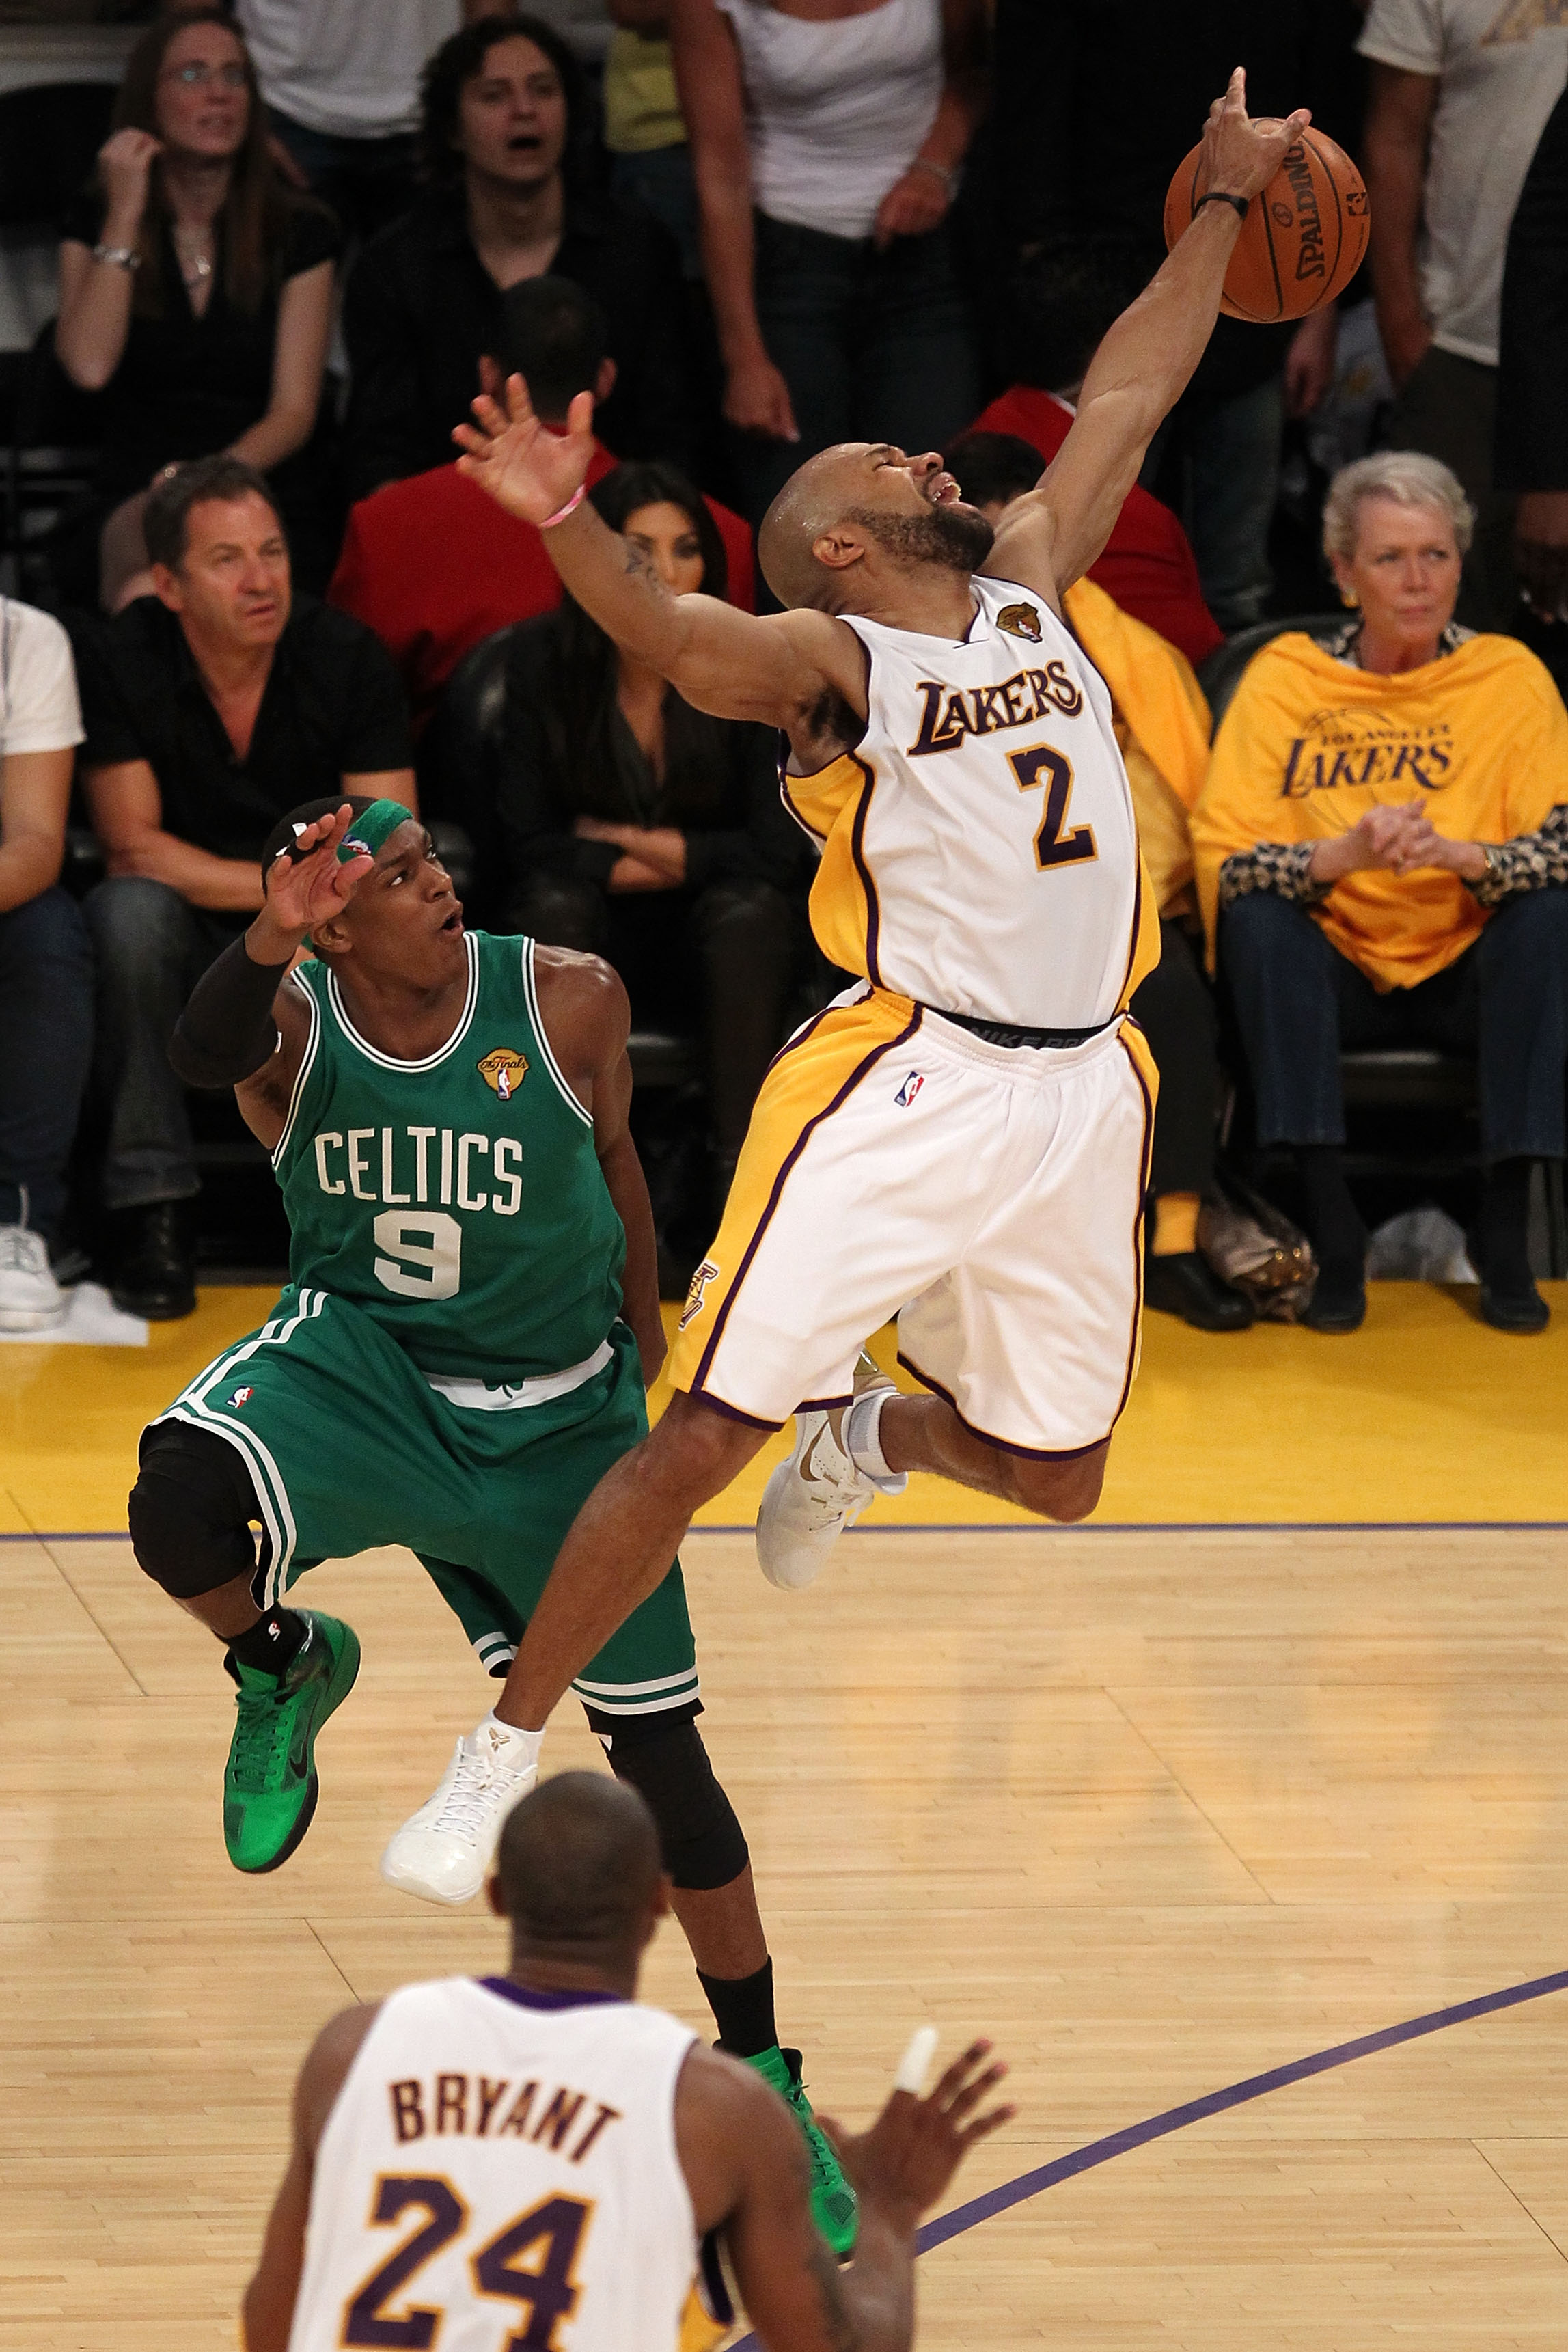 LOS ANGELES, CA - JUNE 06:  Derek Fisher #2 of the Los Angeles Lakers loses the ball against Rajon Rondo #9 of the Boston Celtics in Game Two of the 2010 NBA Finals at Staples Center on June 6, 2010 in Los Angeles, California. NOTE TO USER: User expressly